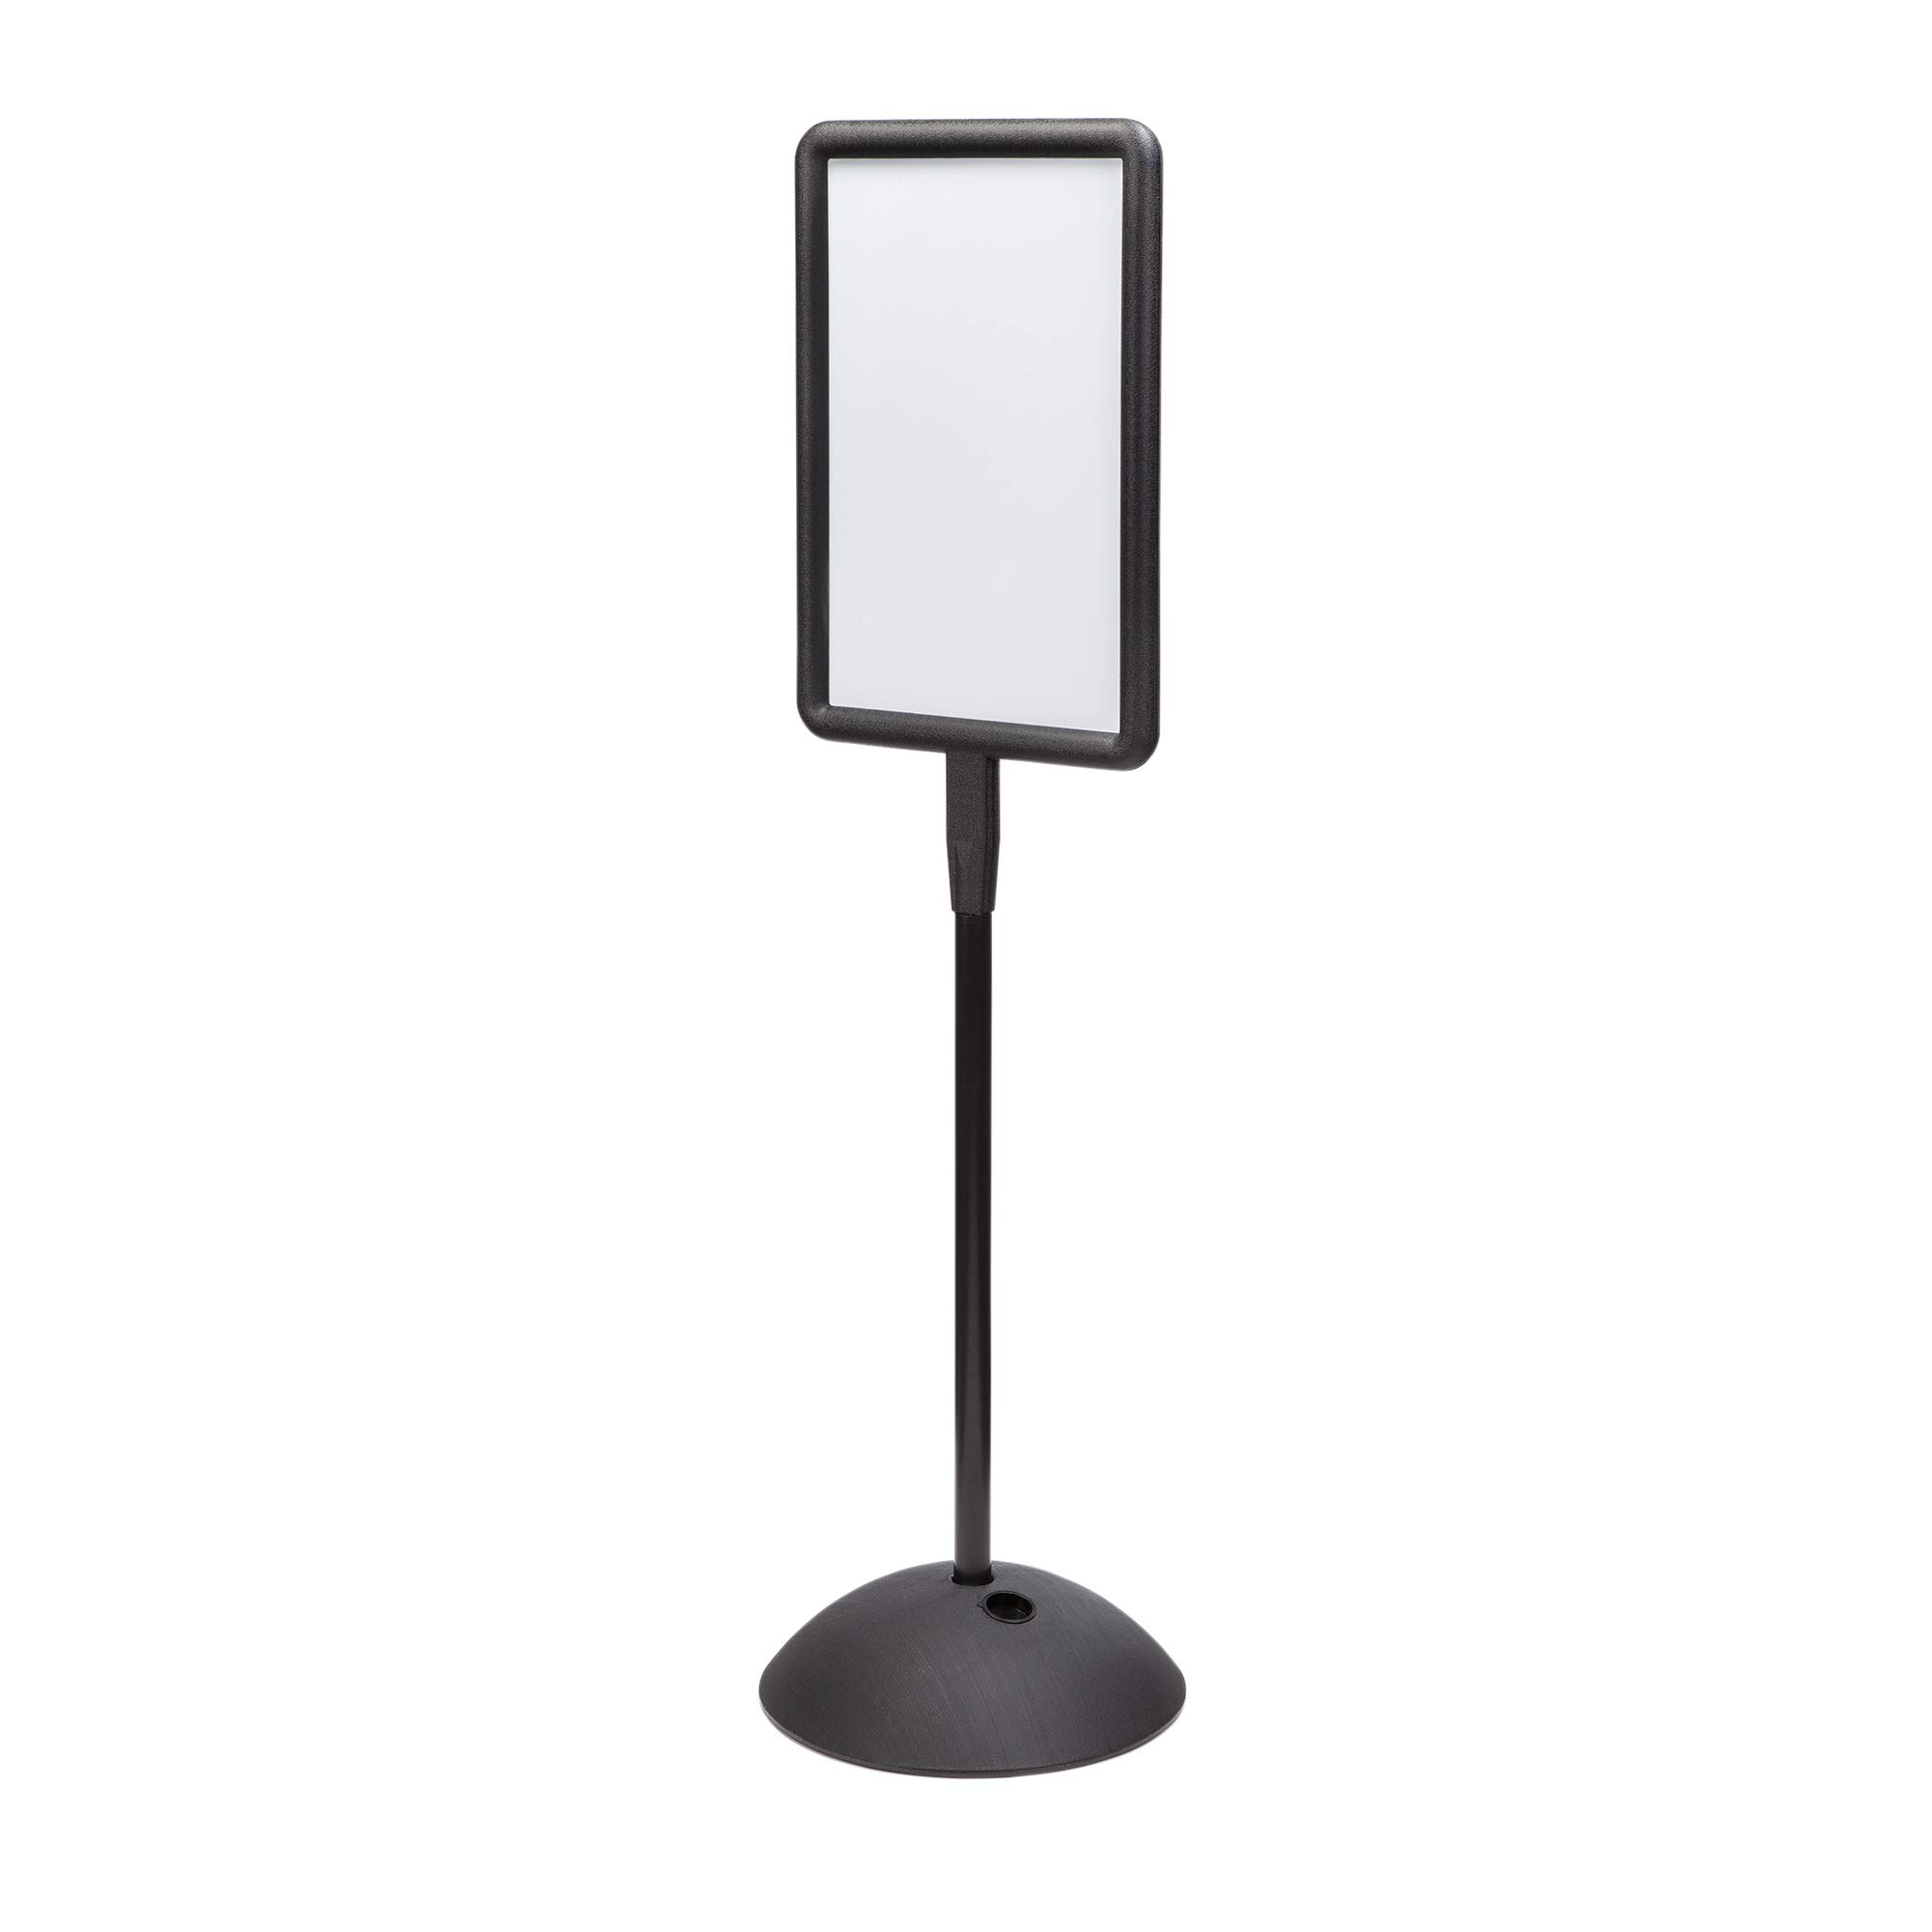 Safco Products Write Way Rectangle Message Sign 4117BL, Black, Magnetic Dual-Sided Dry Erase Board, Indoor and Outdoor Use